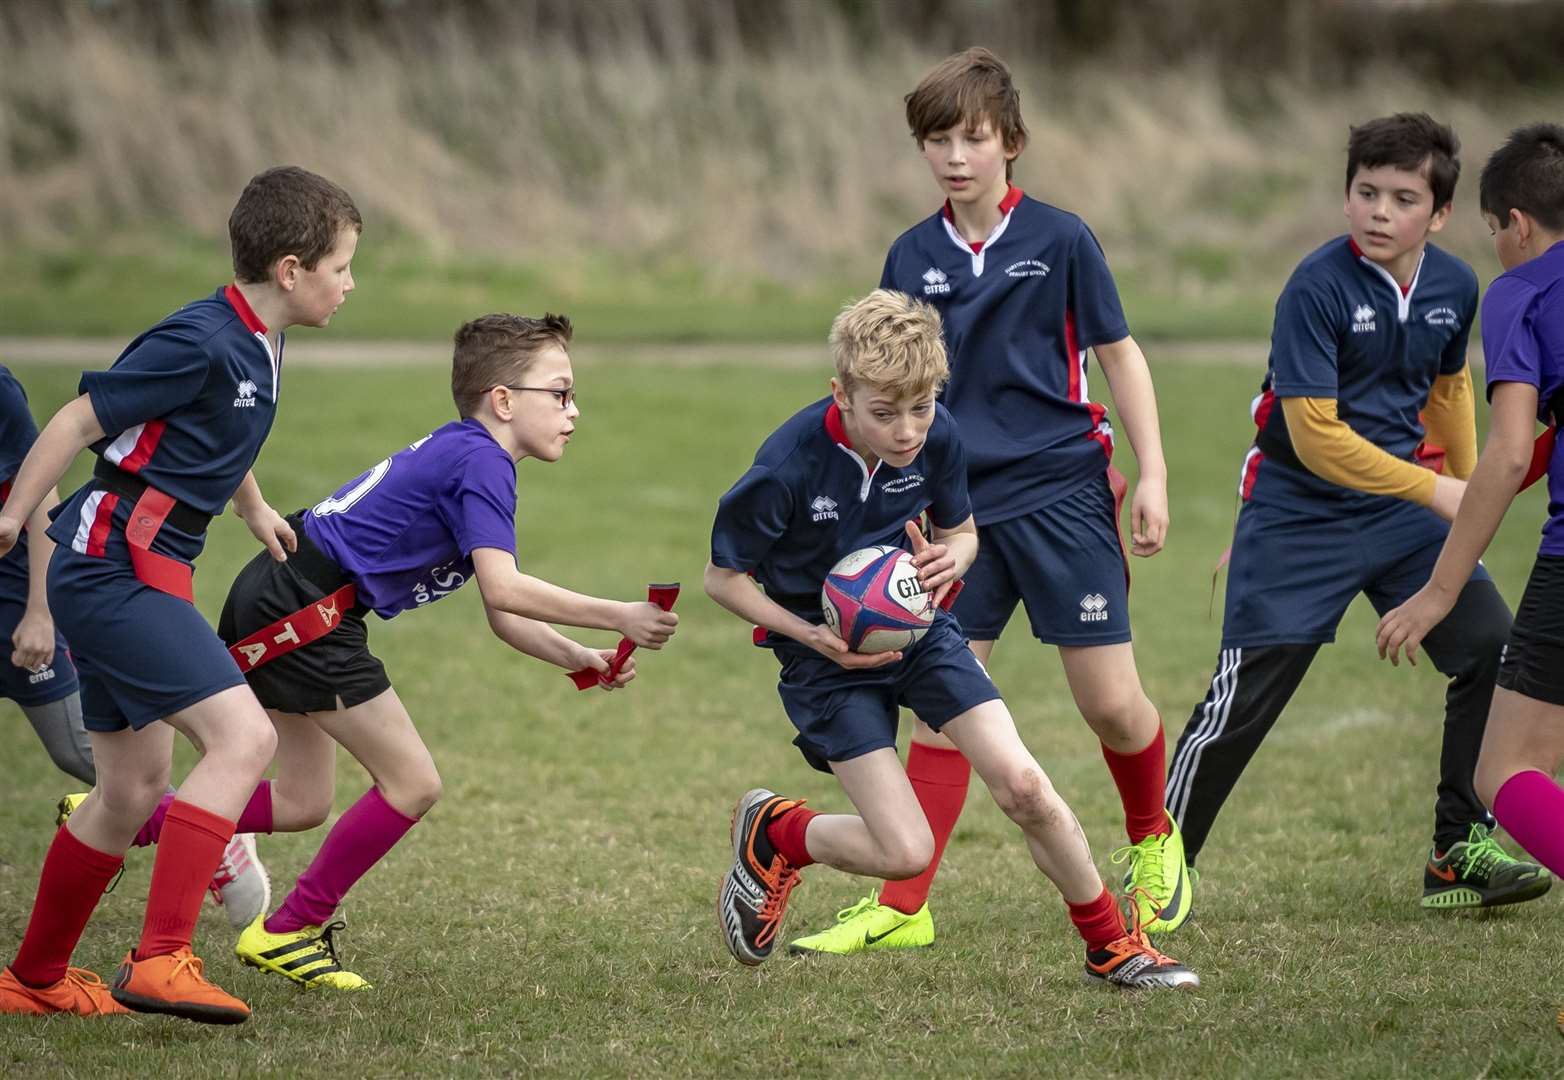 South Cambs SSP Tag Rugby, Cambridge Rugby Football Club, Grantchester Rd. Picture: Keith Heppell. (7974053)